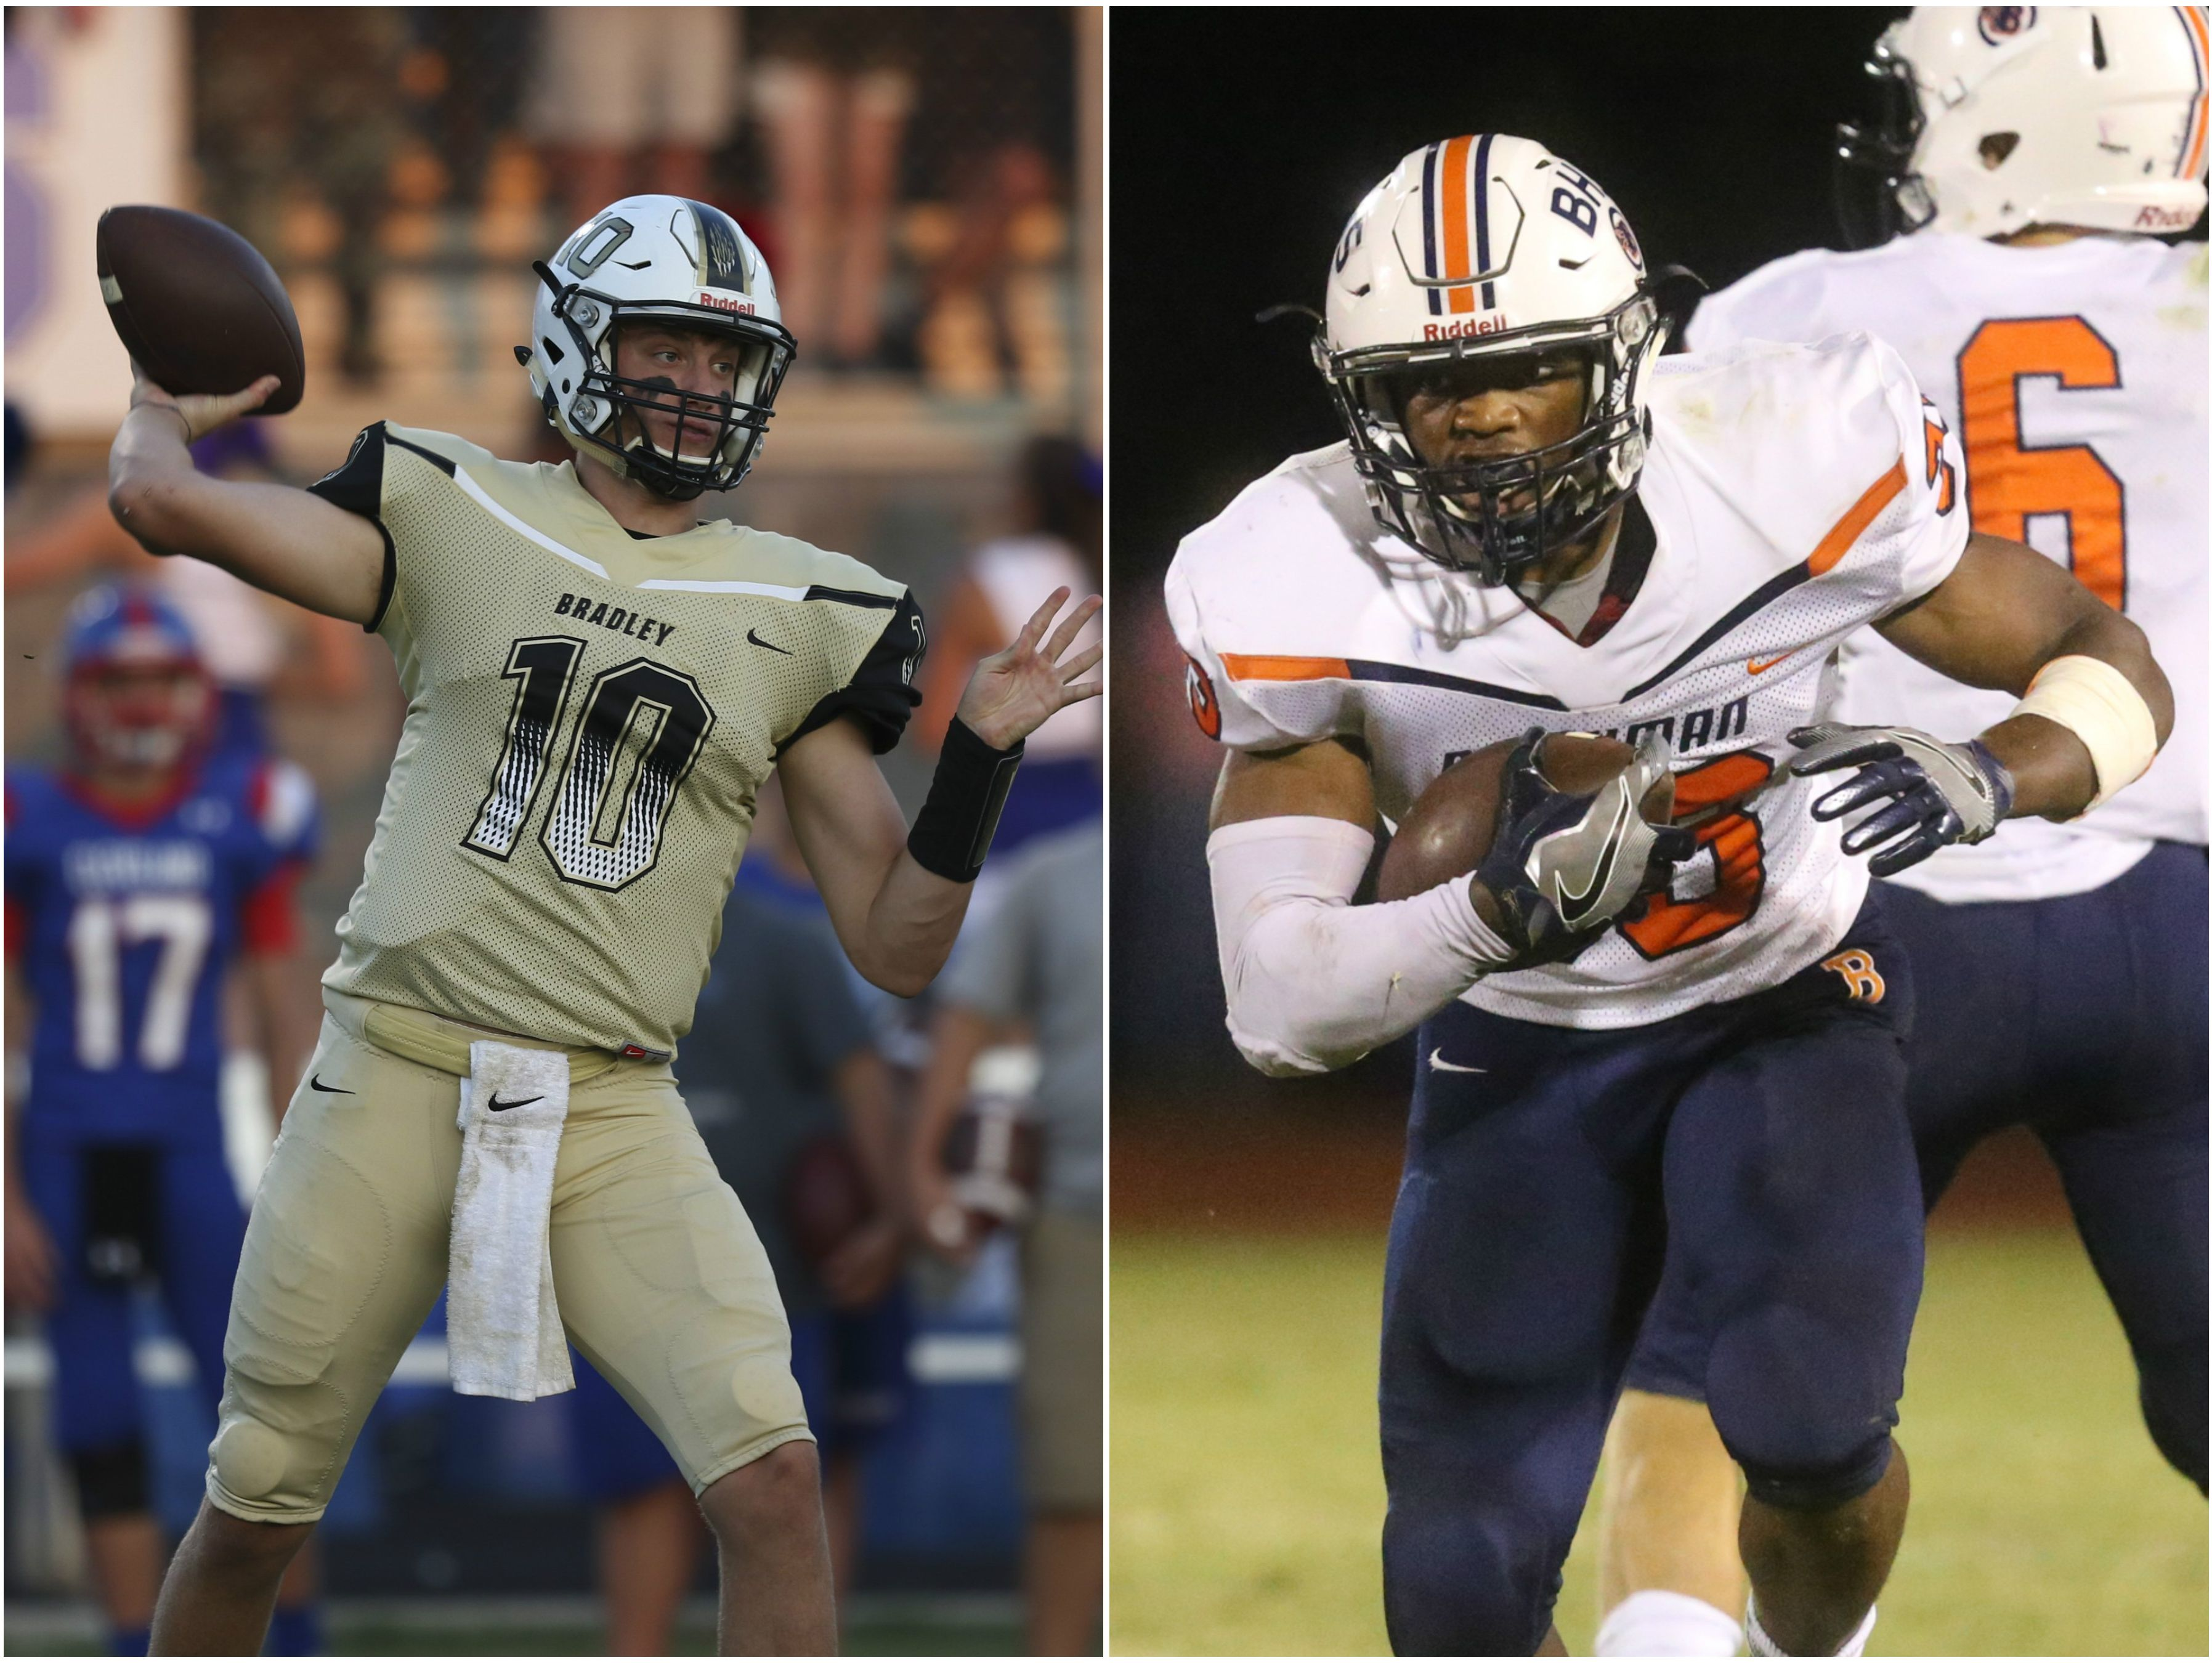 Bradley Central quarterback Cole Copeland (left) and Blackman running back Master Teague (right)